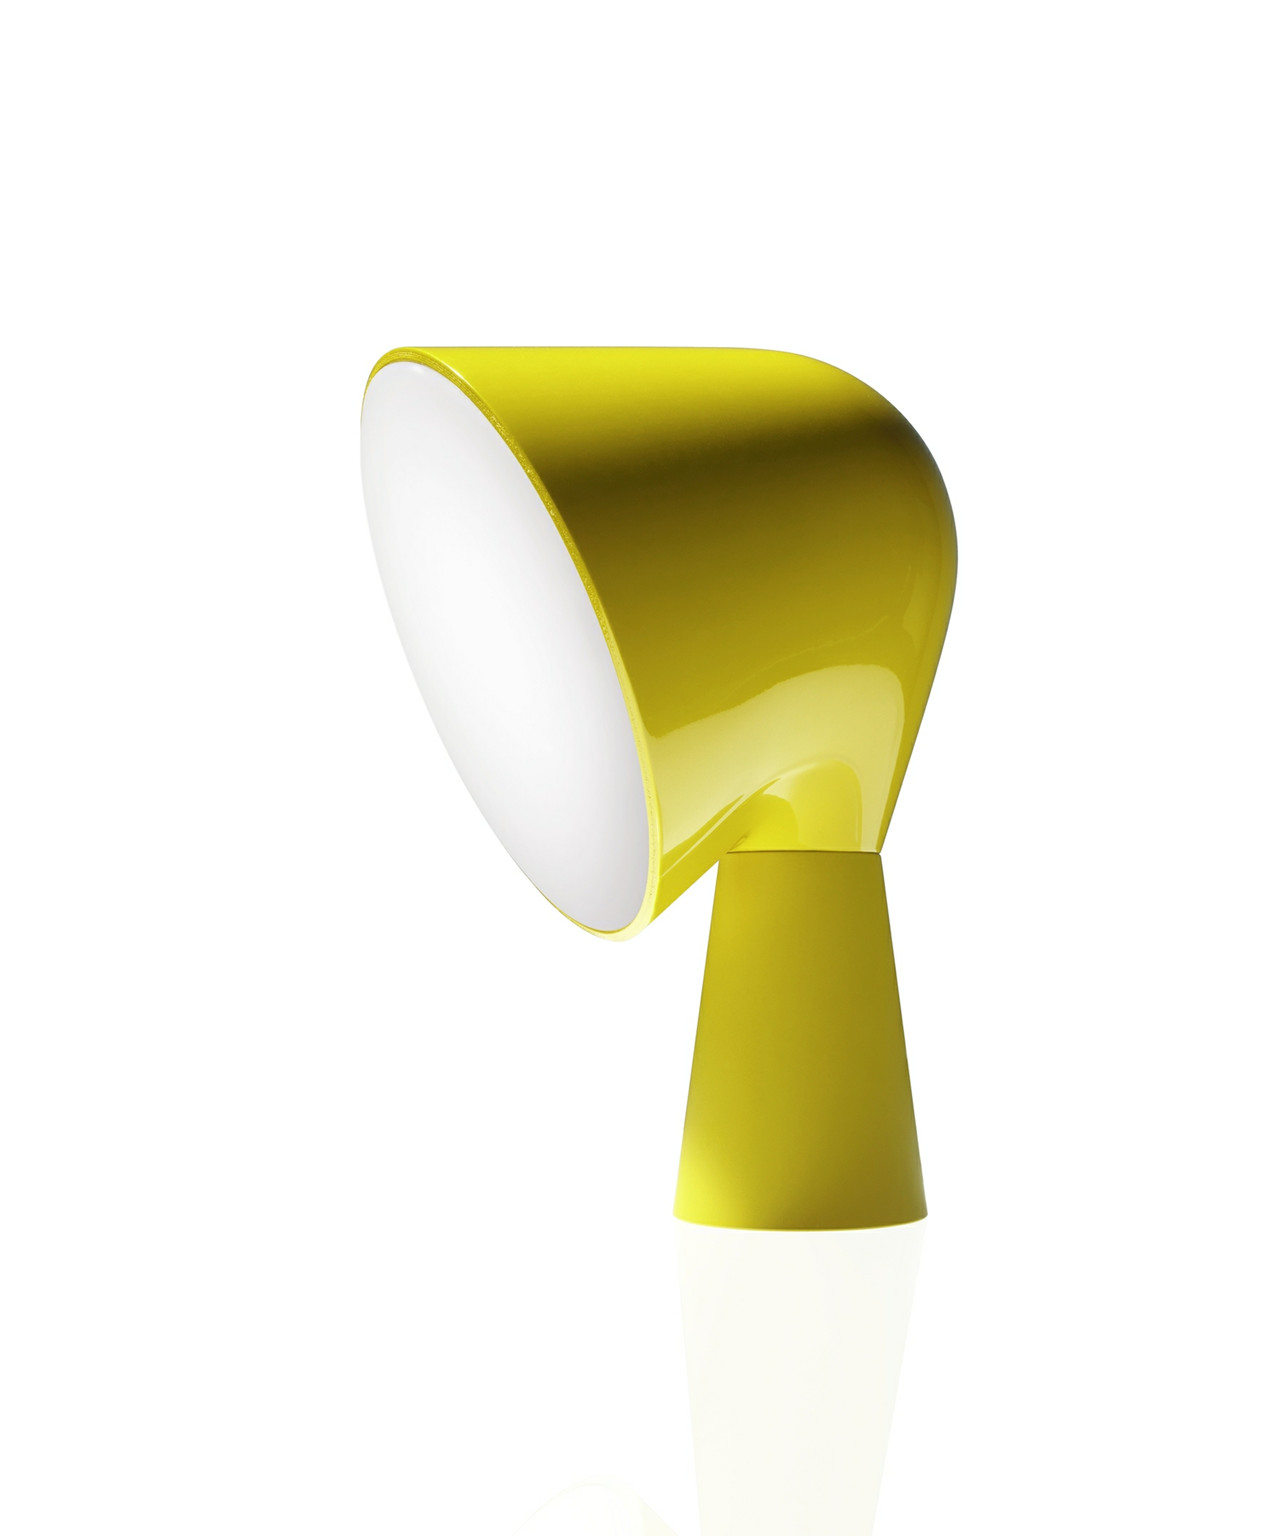 Image of   Binic Bordlampe Gul - Foscarini